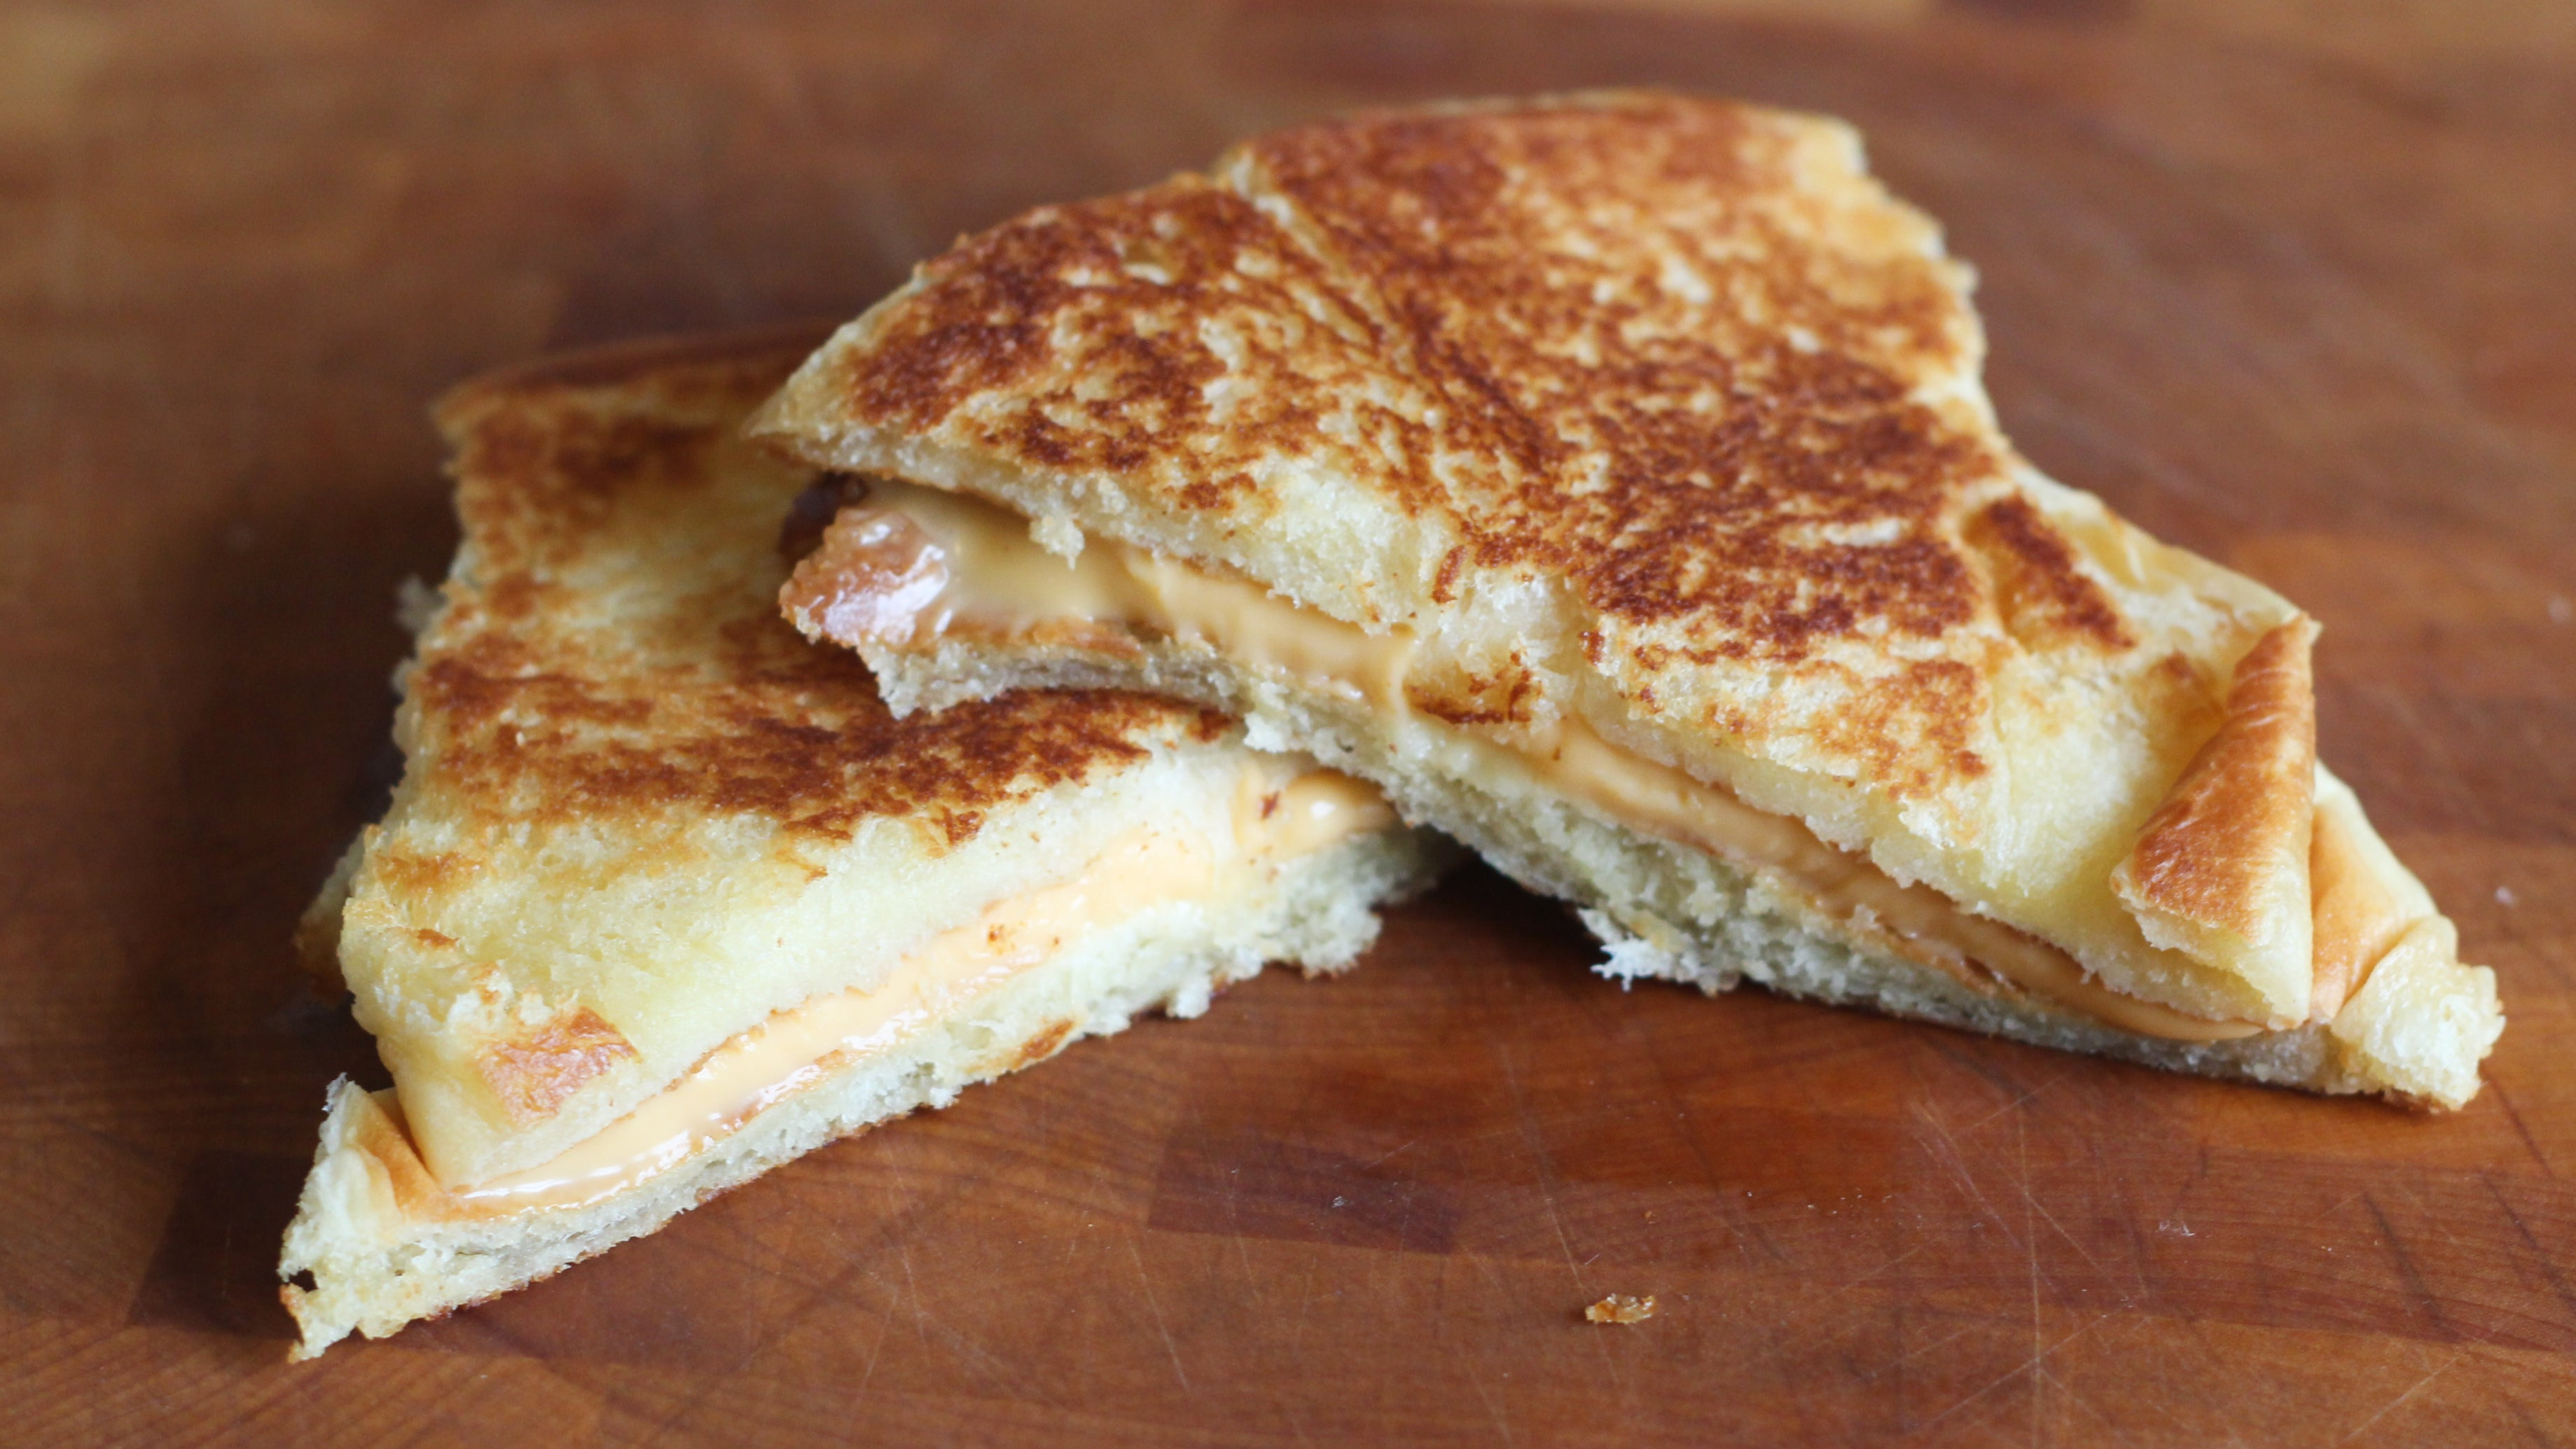 Make An Excellent Grilled Cheese Sandwiches With Inside-Out Rolls